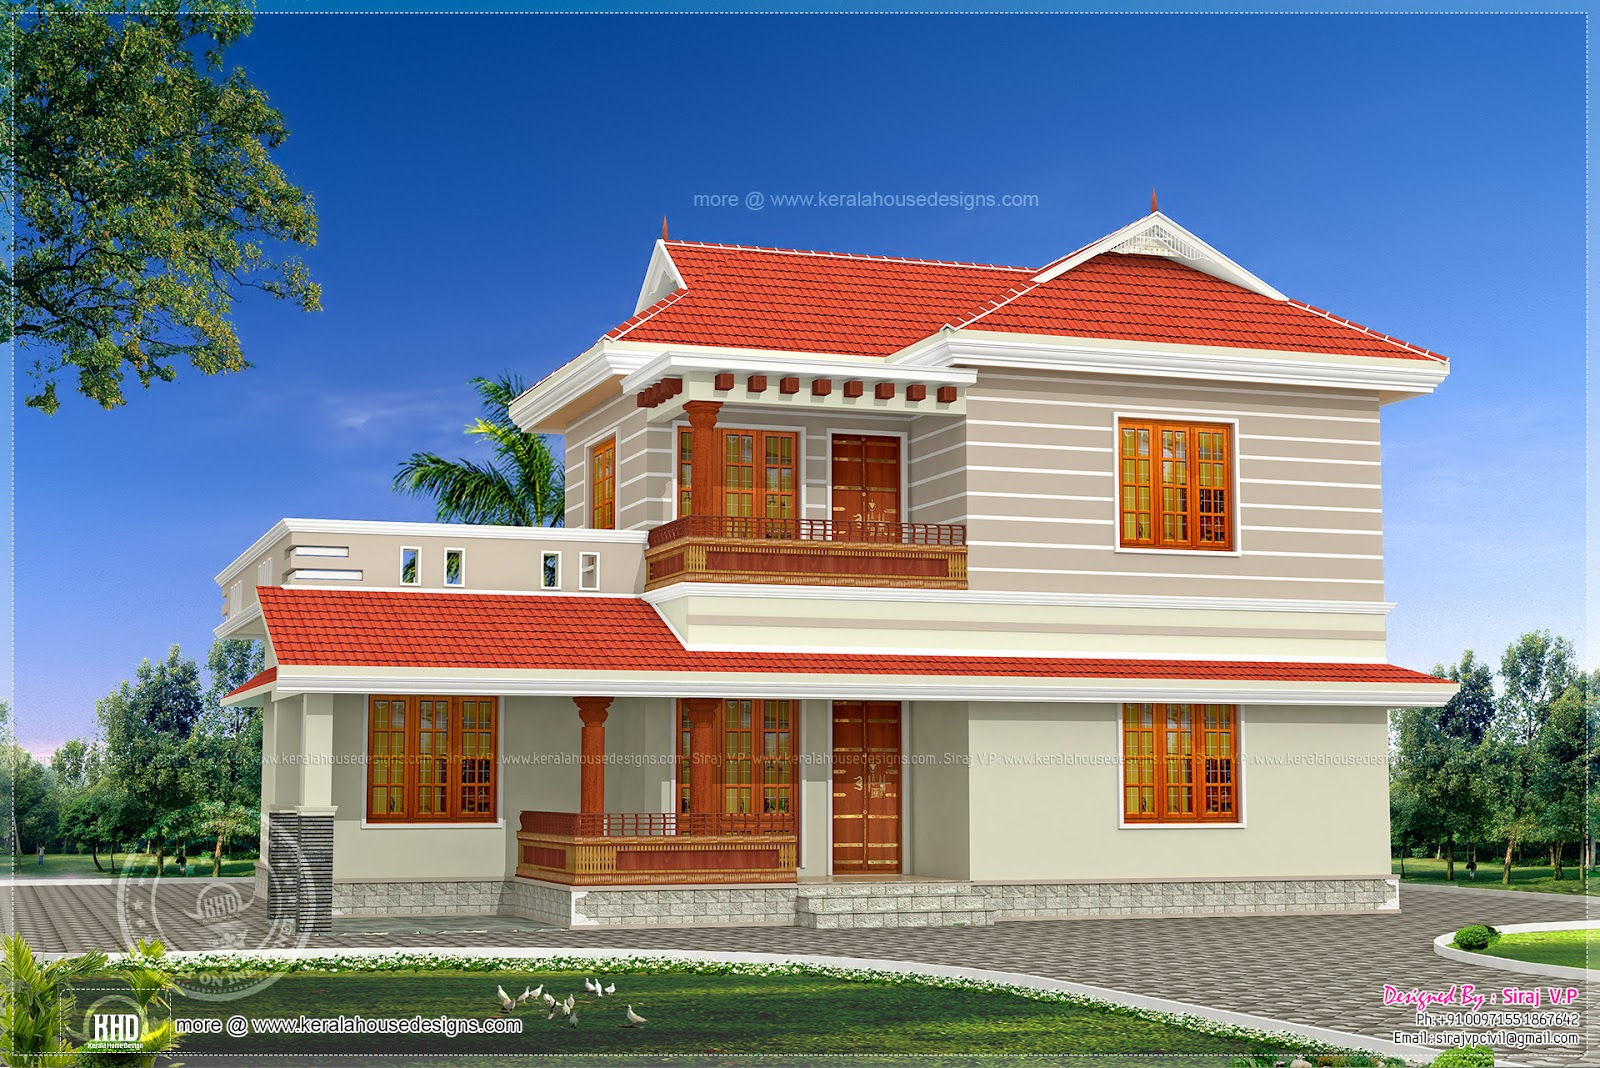 3 bedroom house exterior design in 200 square yards for Homes pictures